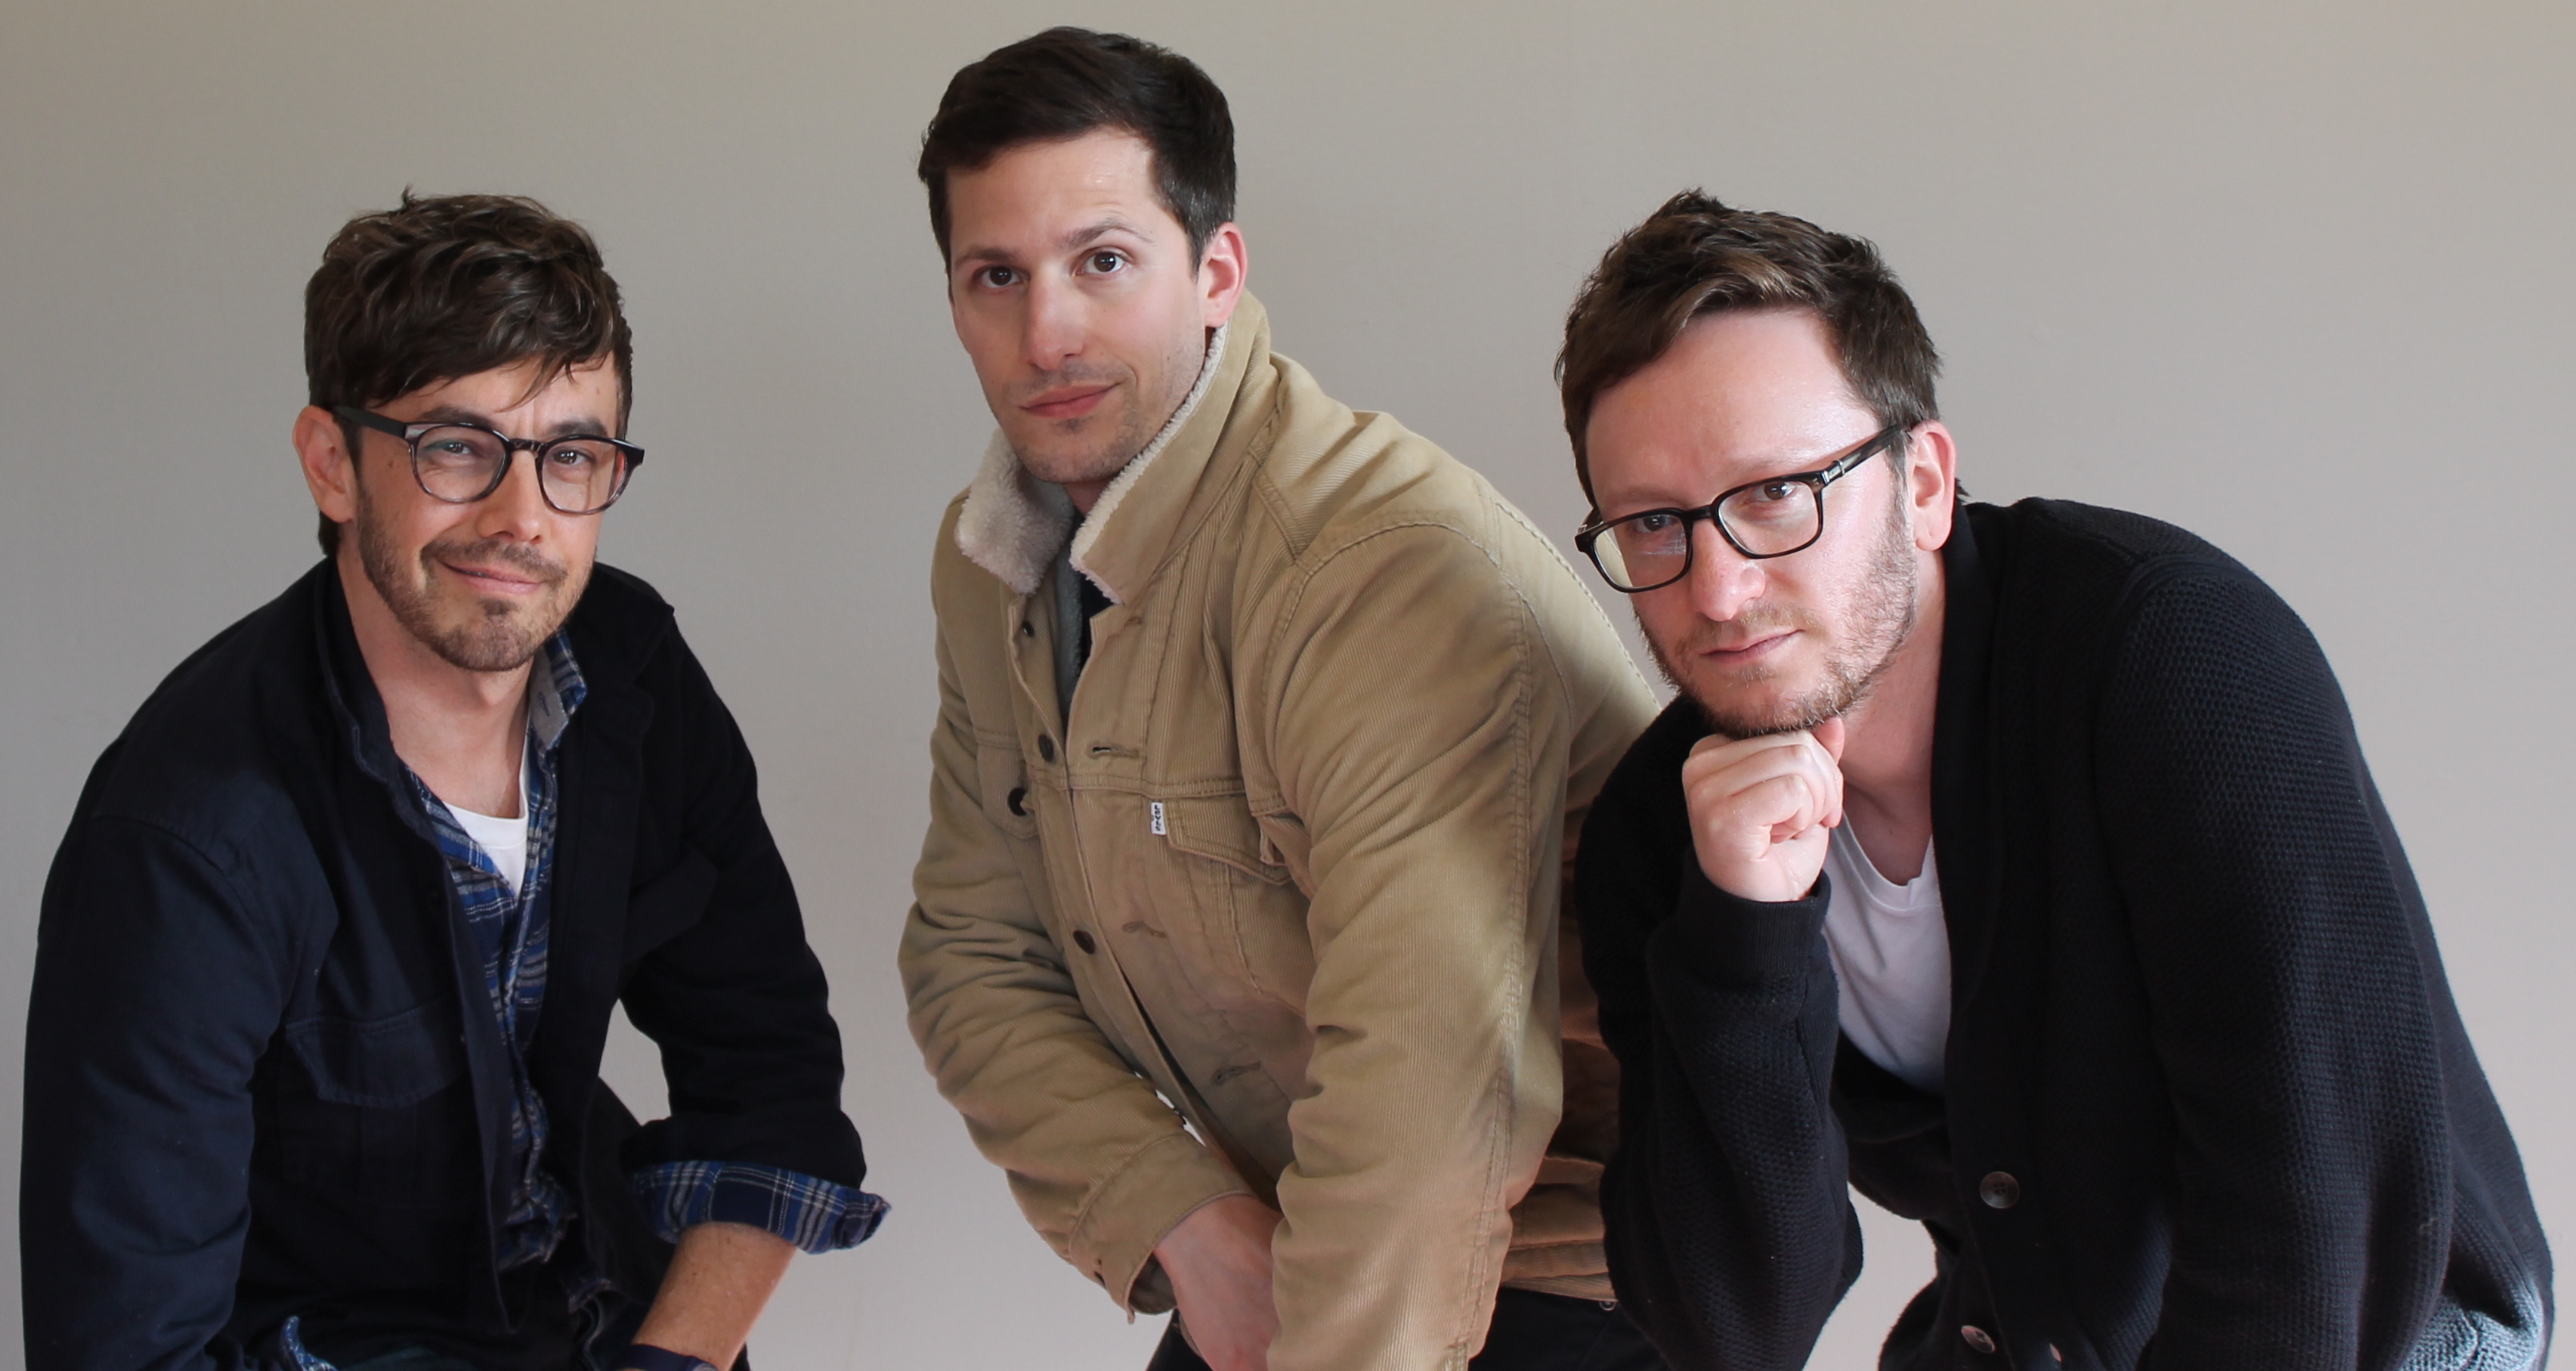 The Lonely Island Supports 'Popstar,' Going After Goals